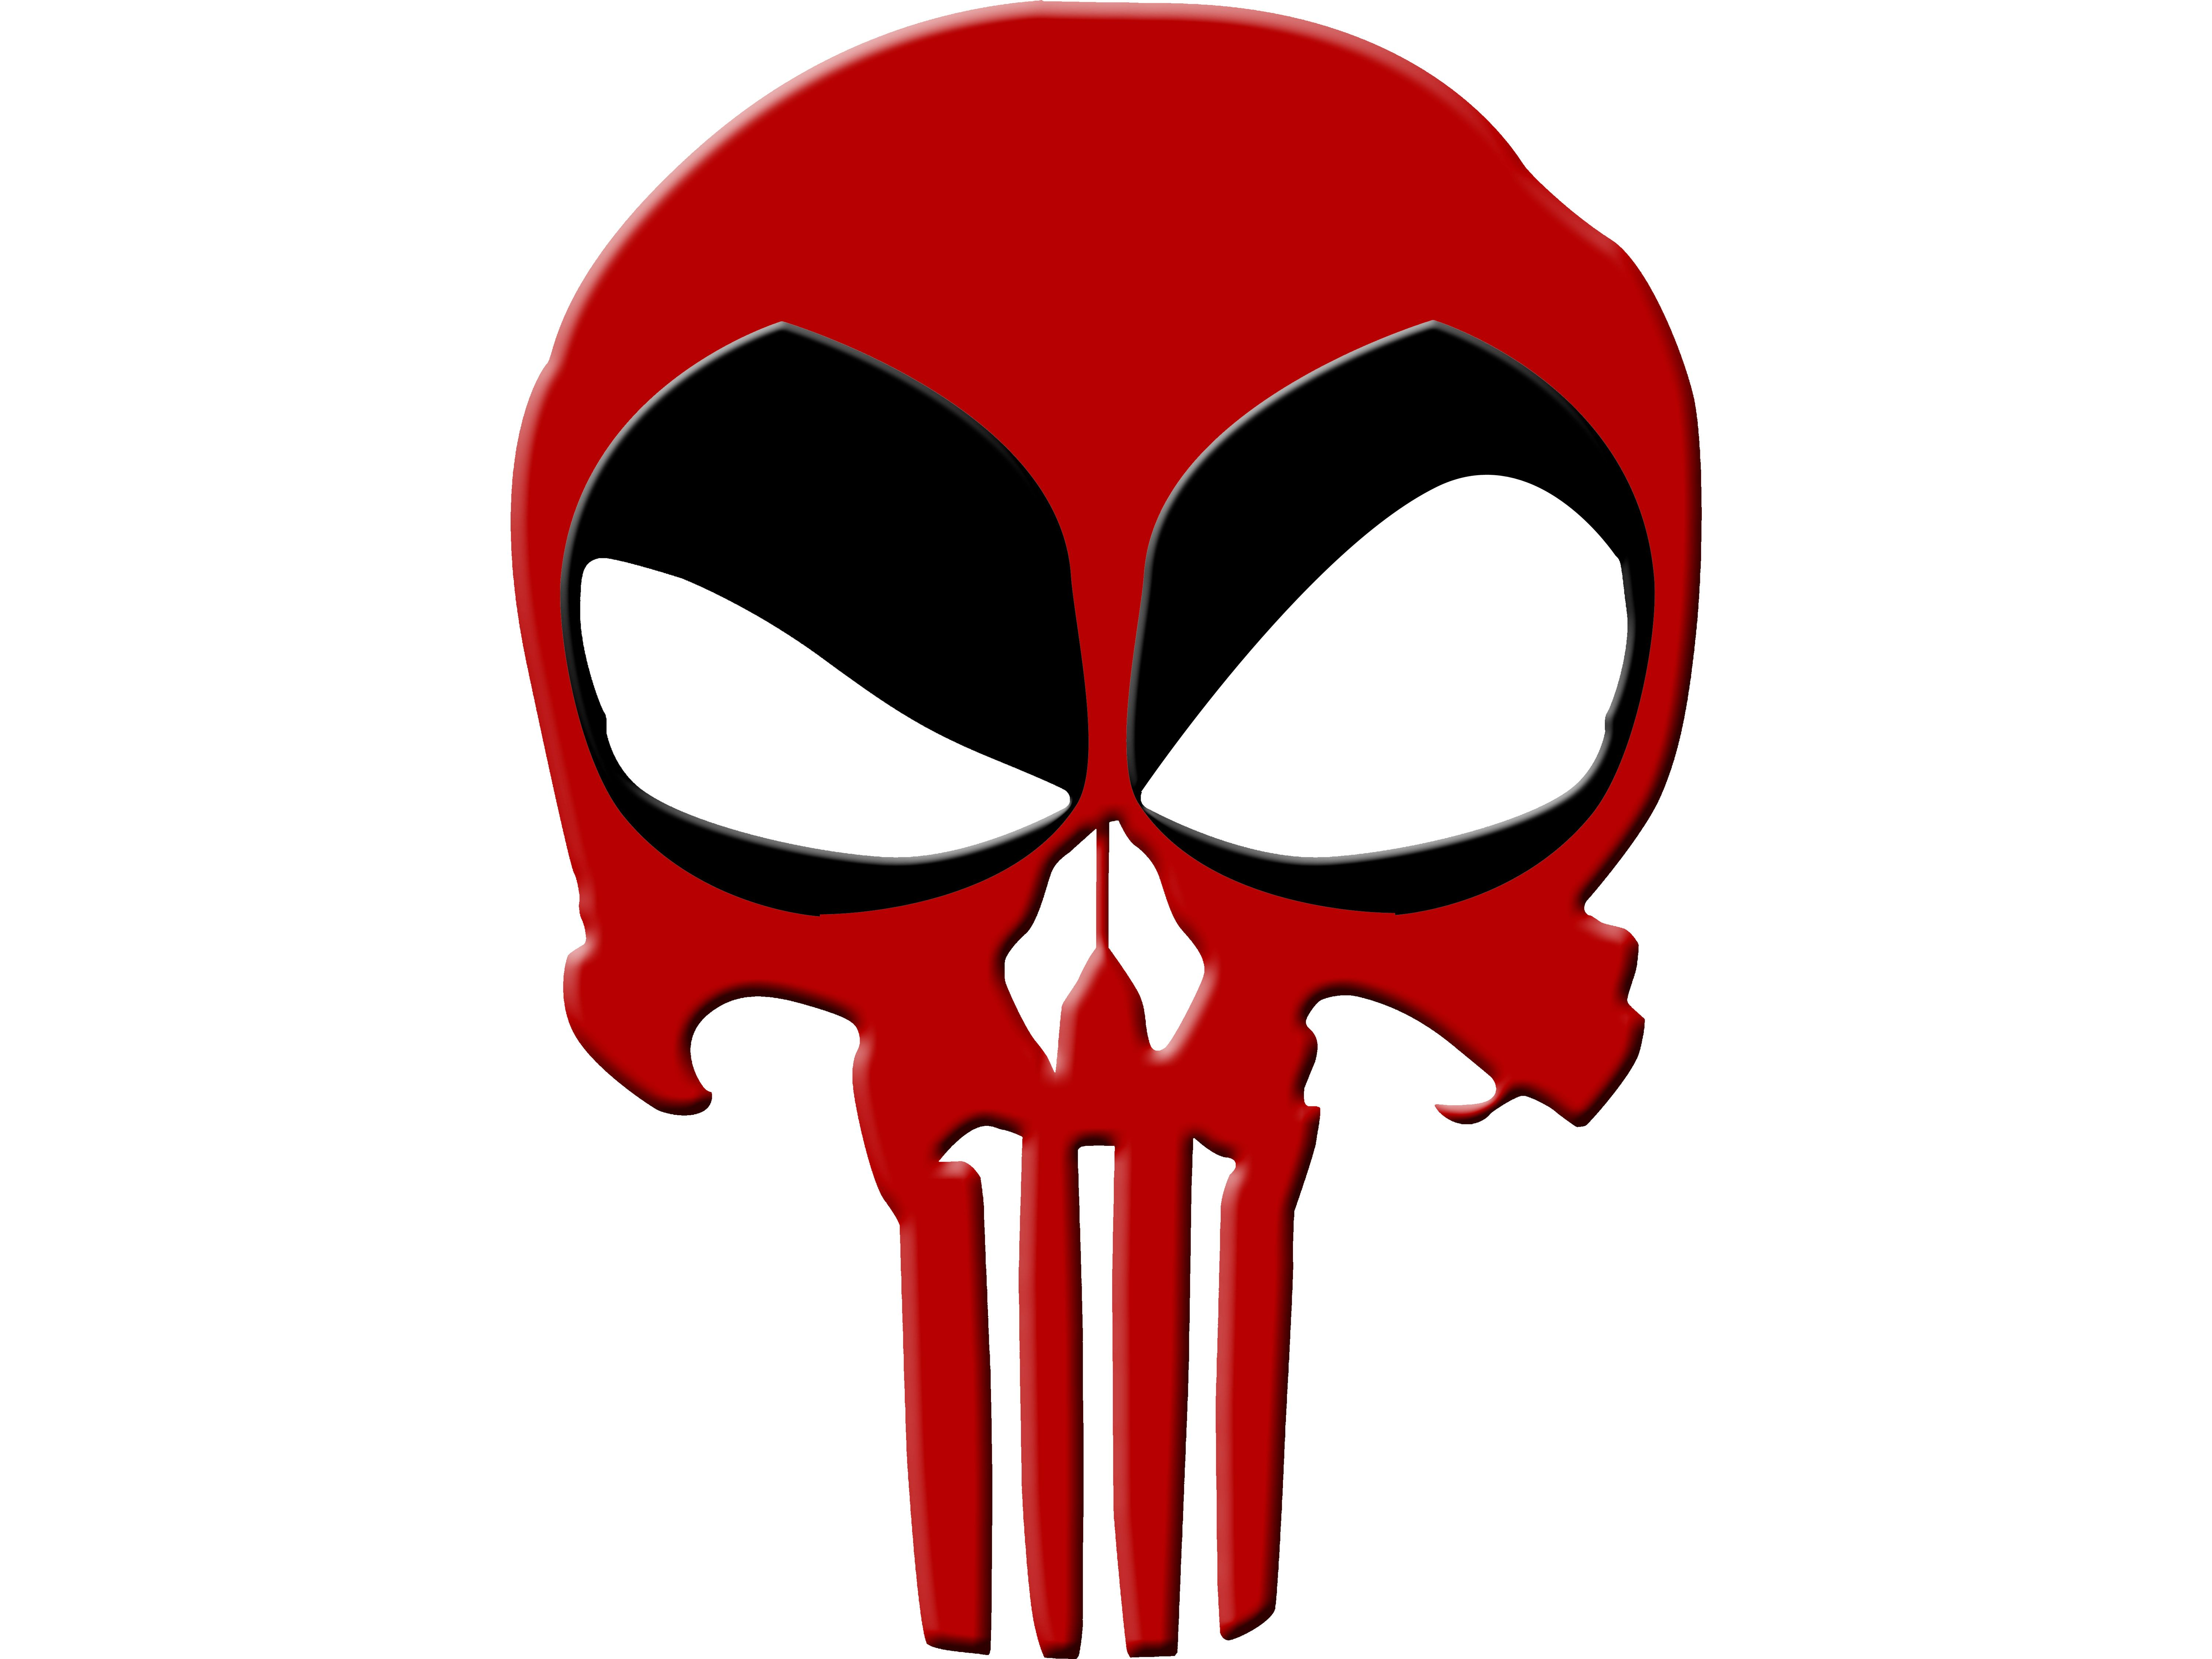 6000x4500 Comics - Deadpool - Merc With A Mouth - Punisher Wallpaper ...